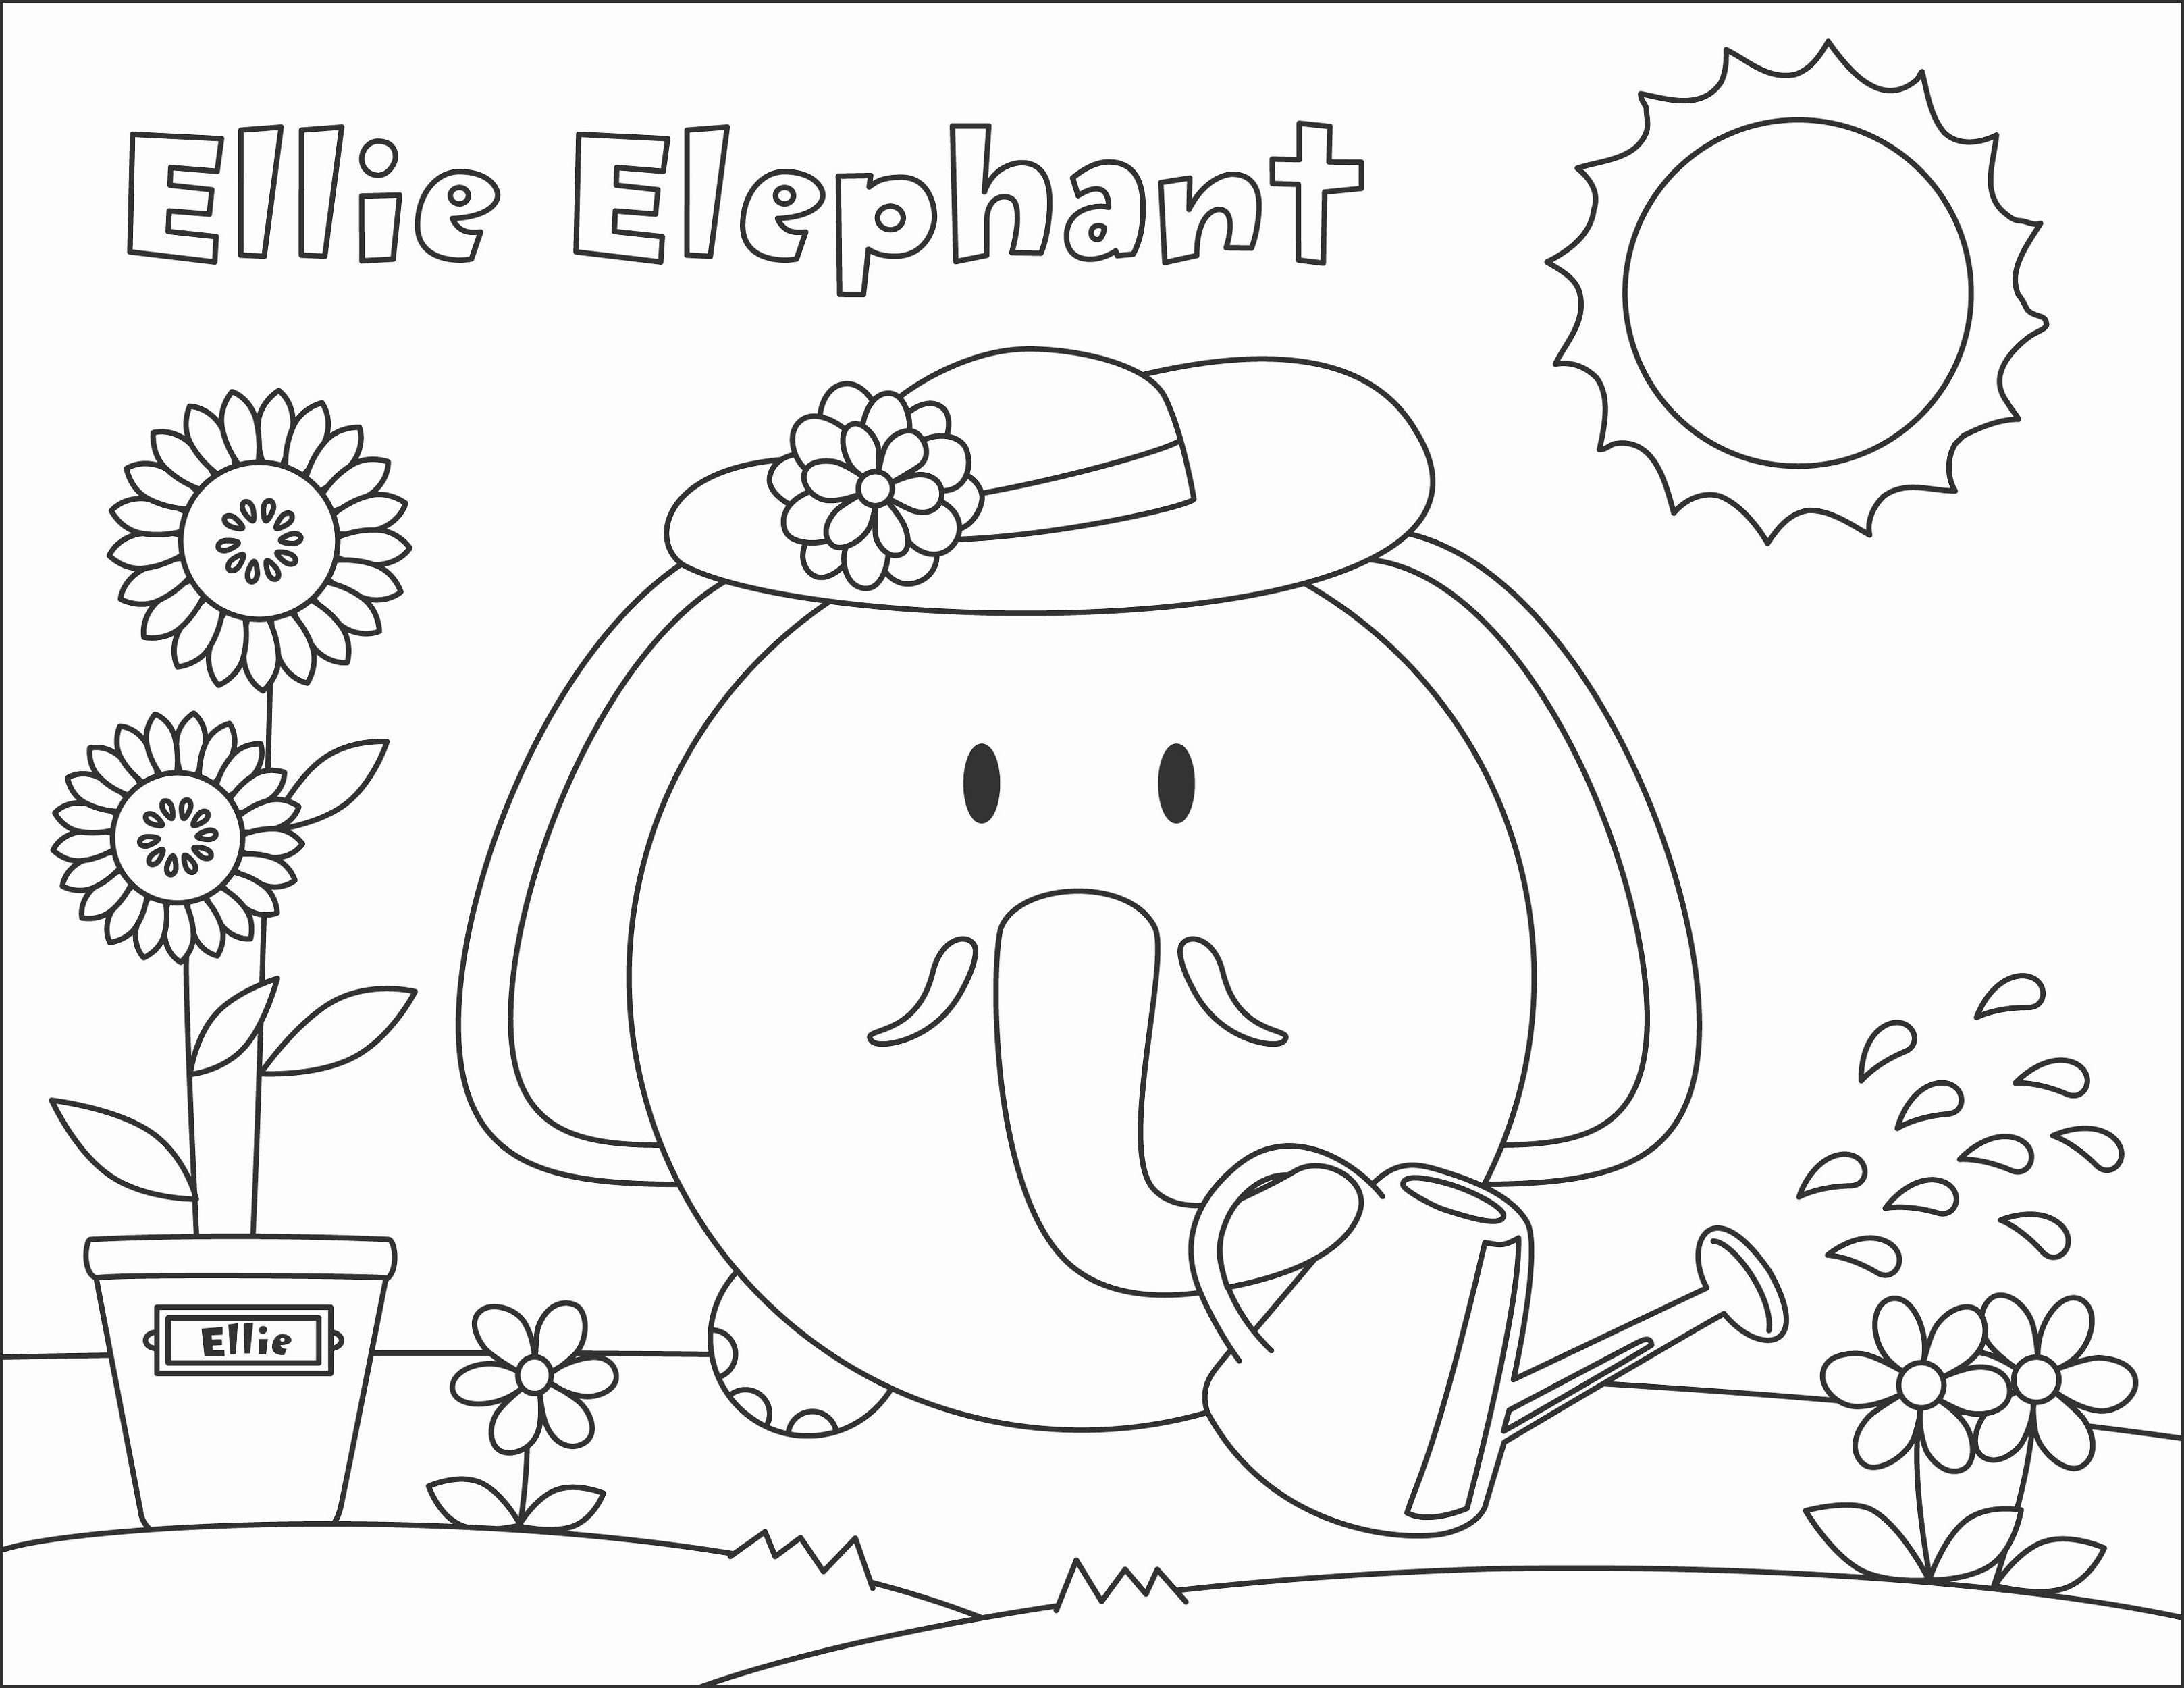 Dltk Coloring For 2019 K5 Worksheets In 2020 Zoo Phonics Printable Christmas Coloring Pages Math Art Activities